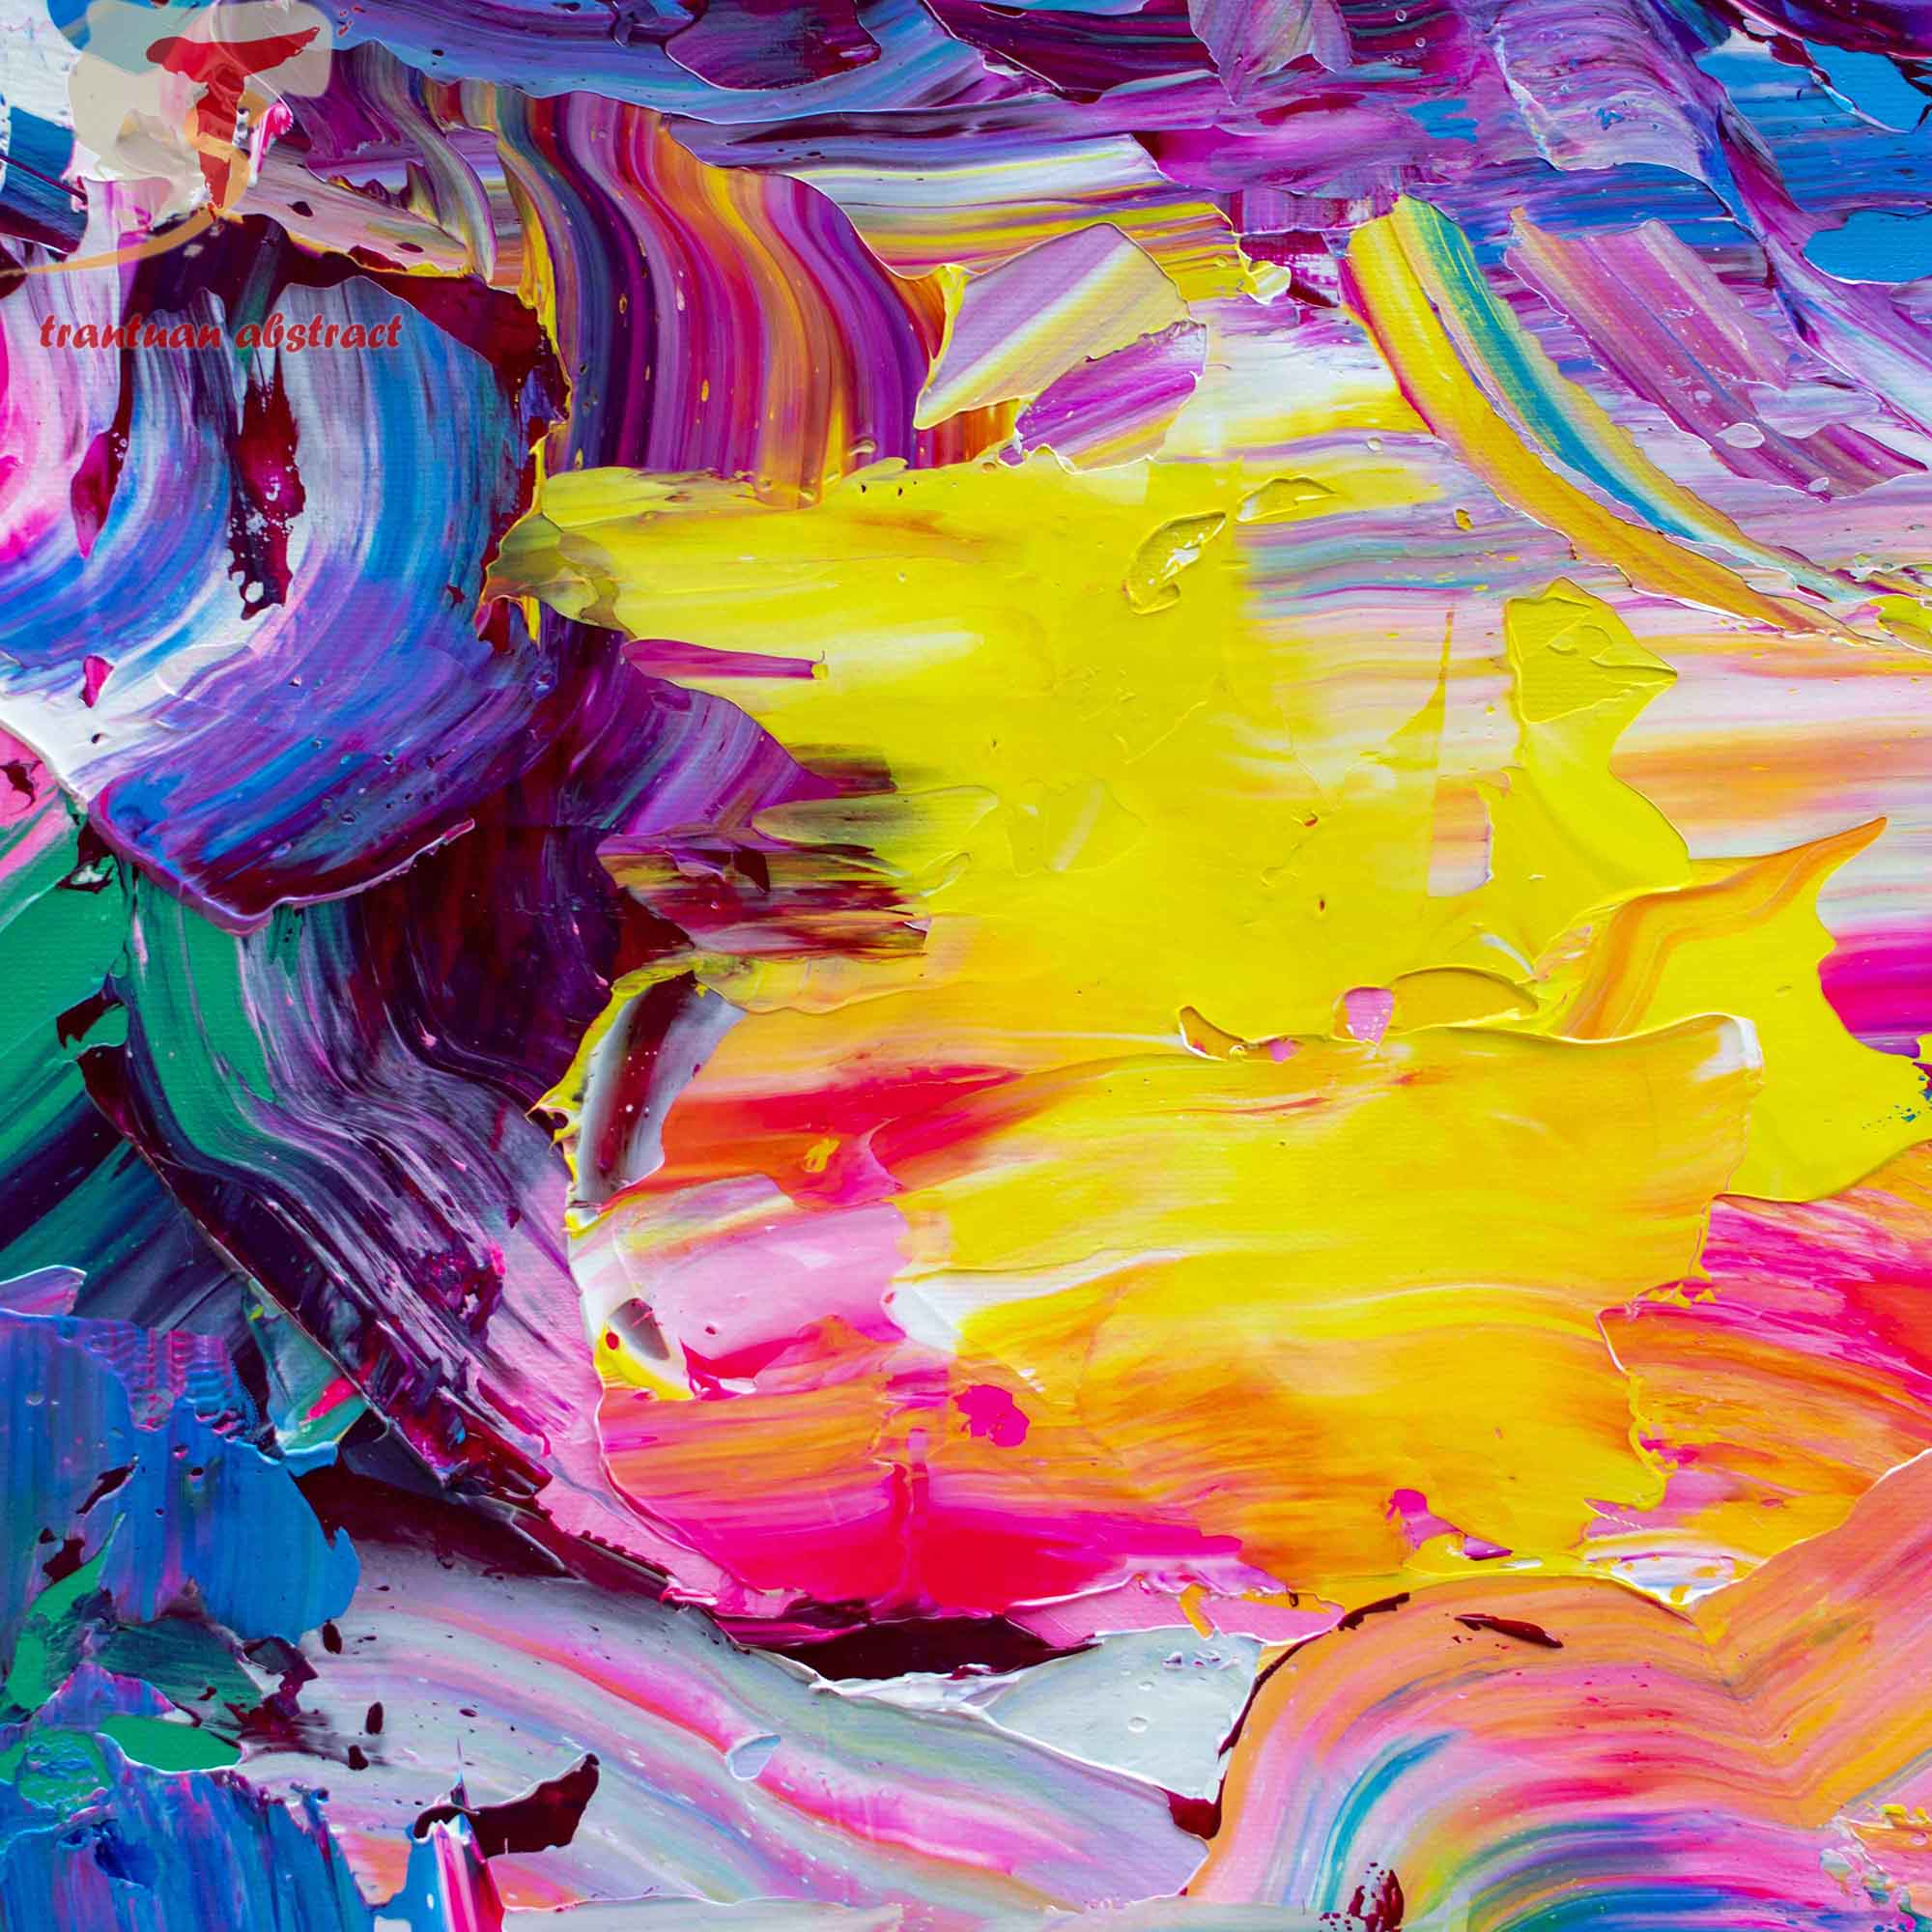 Tran Tuan Abstract Flying to the Light 135 x 80 x 5 cm Acrylic on Canvas Painting Detail s (2)